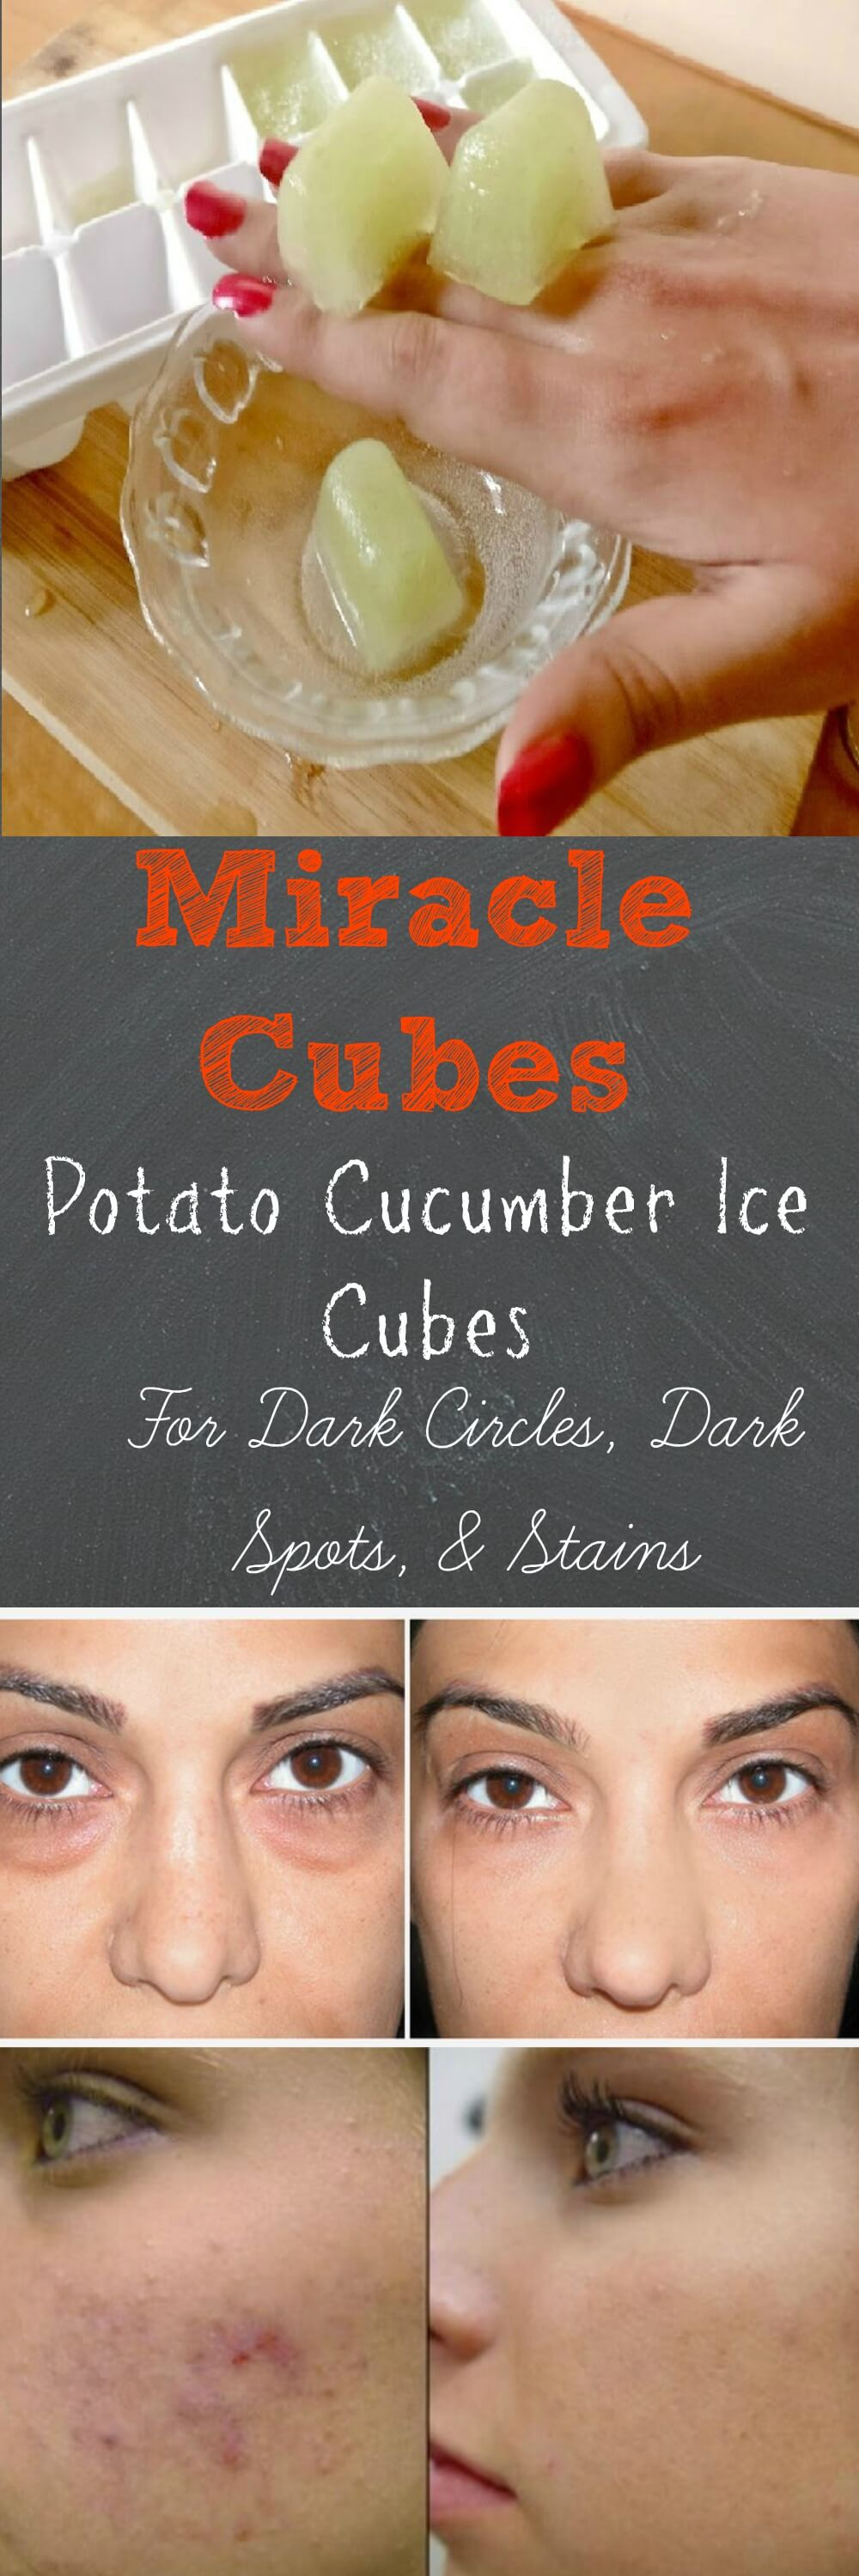 Potato Cucumber Ice Cubes